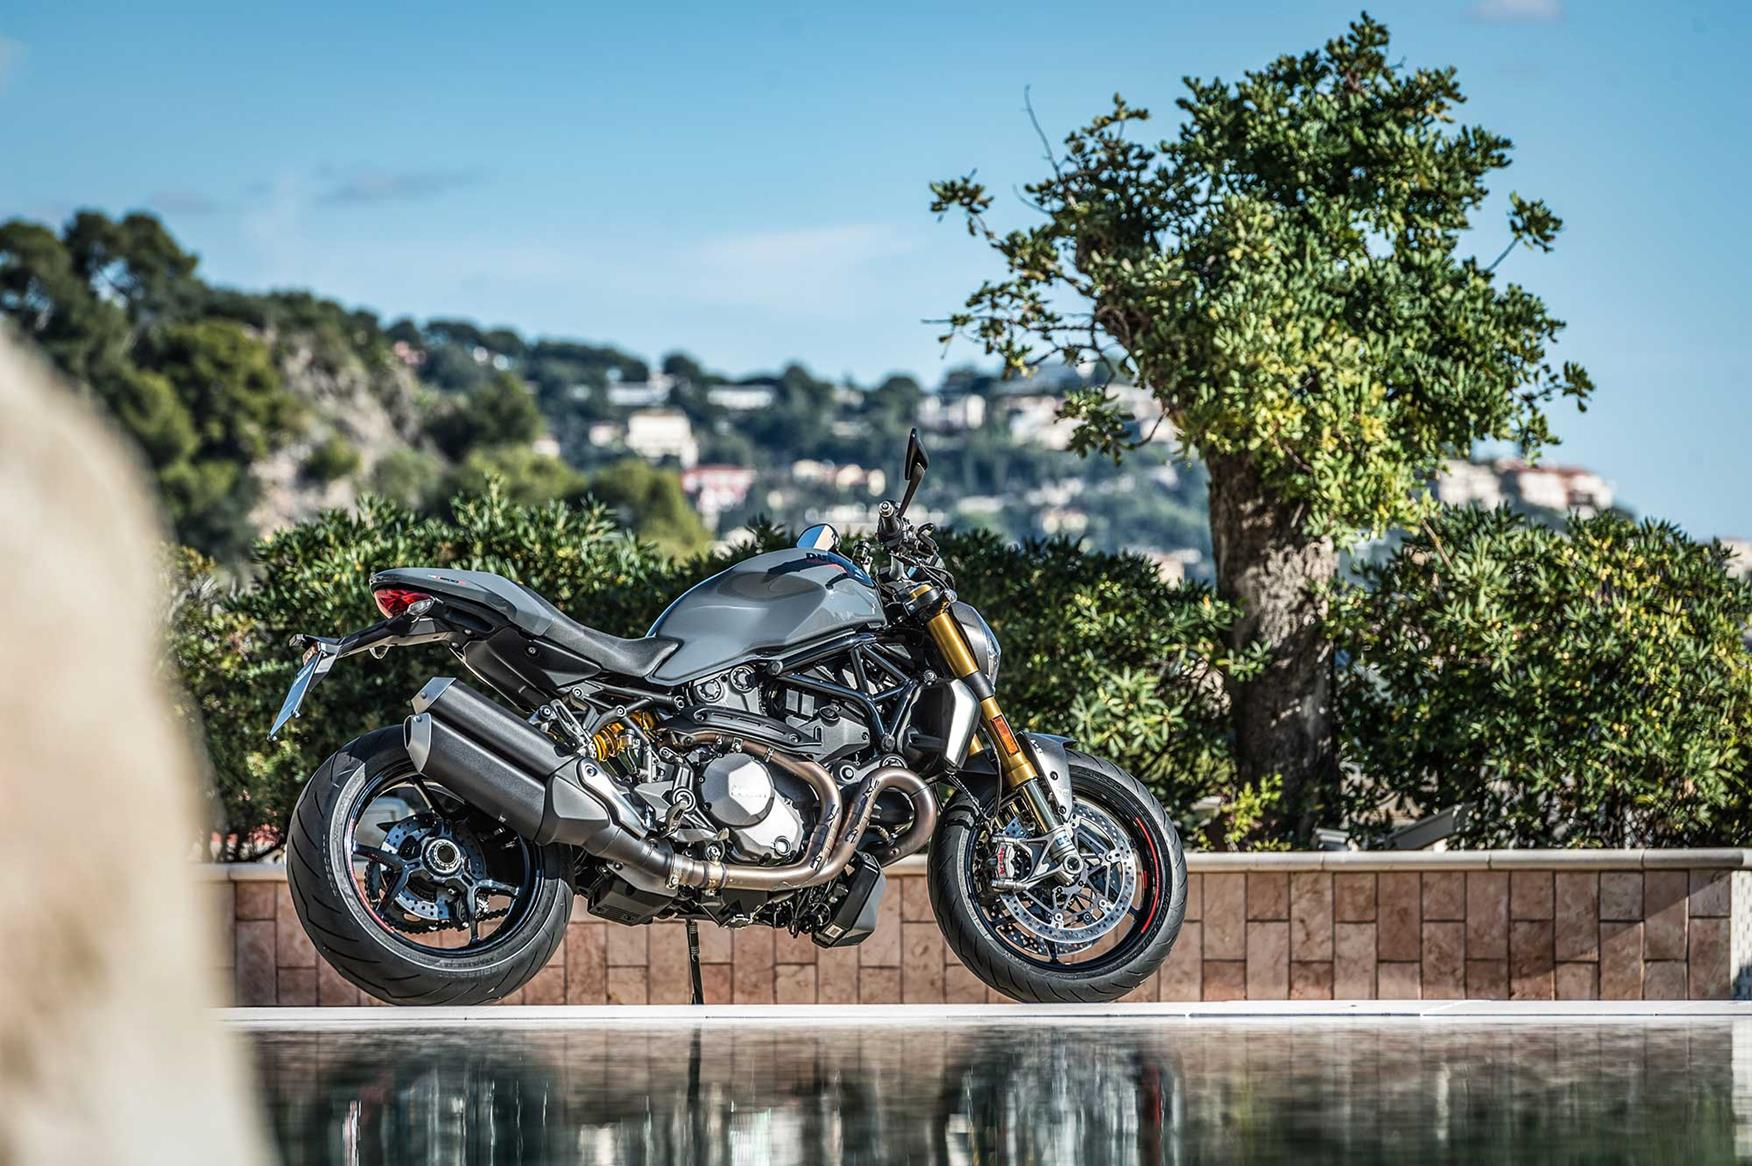 5 things we love about the Ducati Monster 1200 S